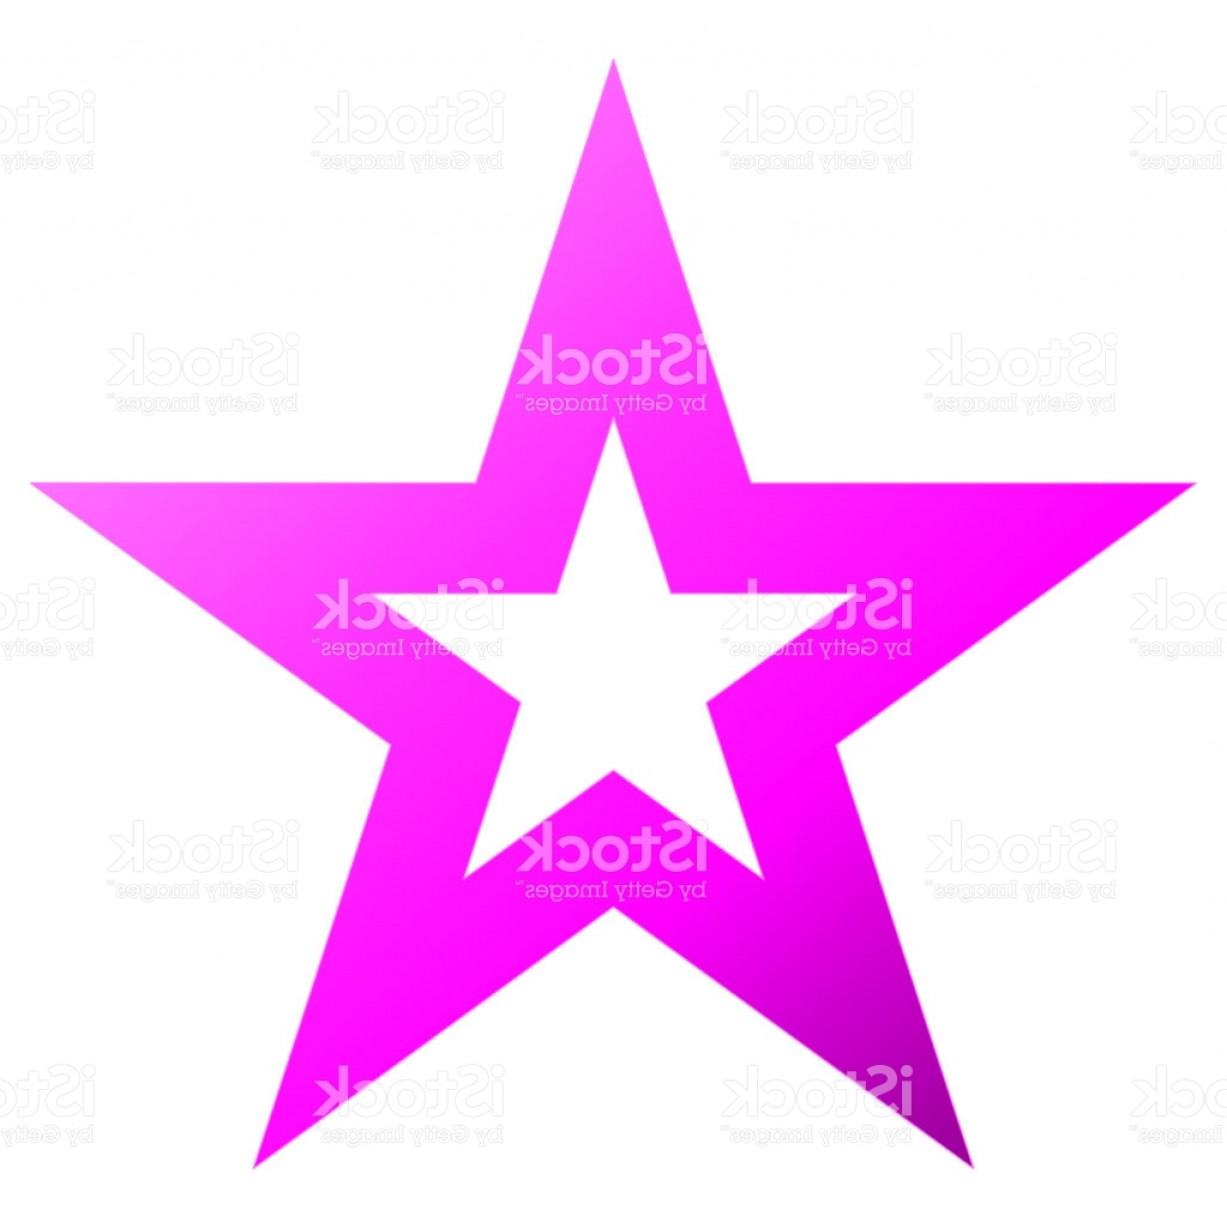 5 Point Star Vector Art: Christmas Star Purple Outlined Point Star Isolated On White Gm